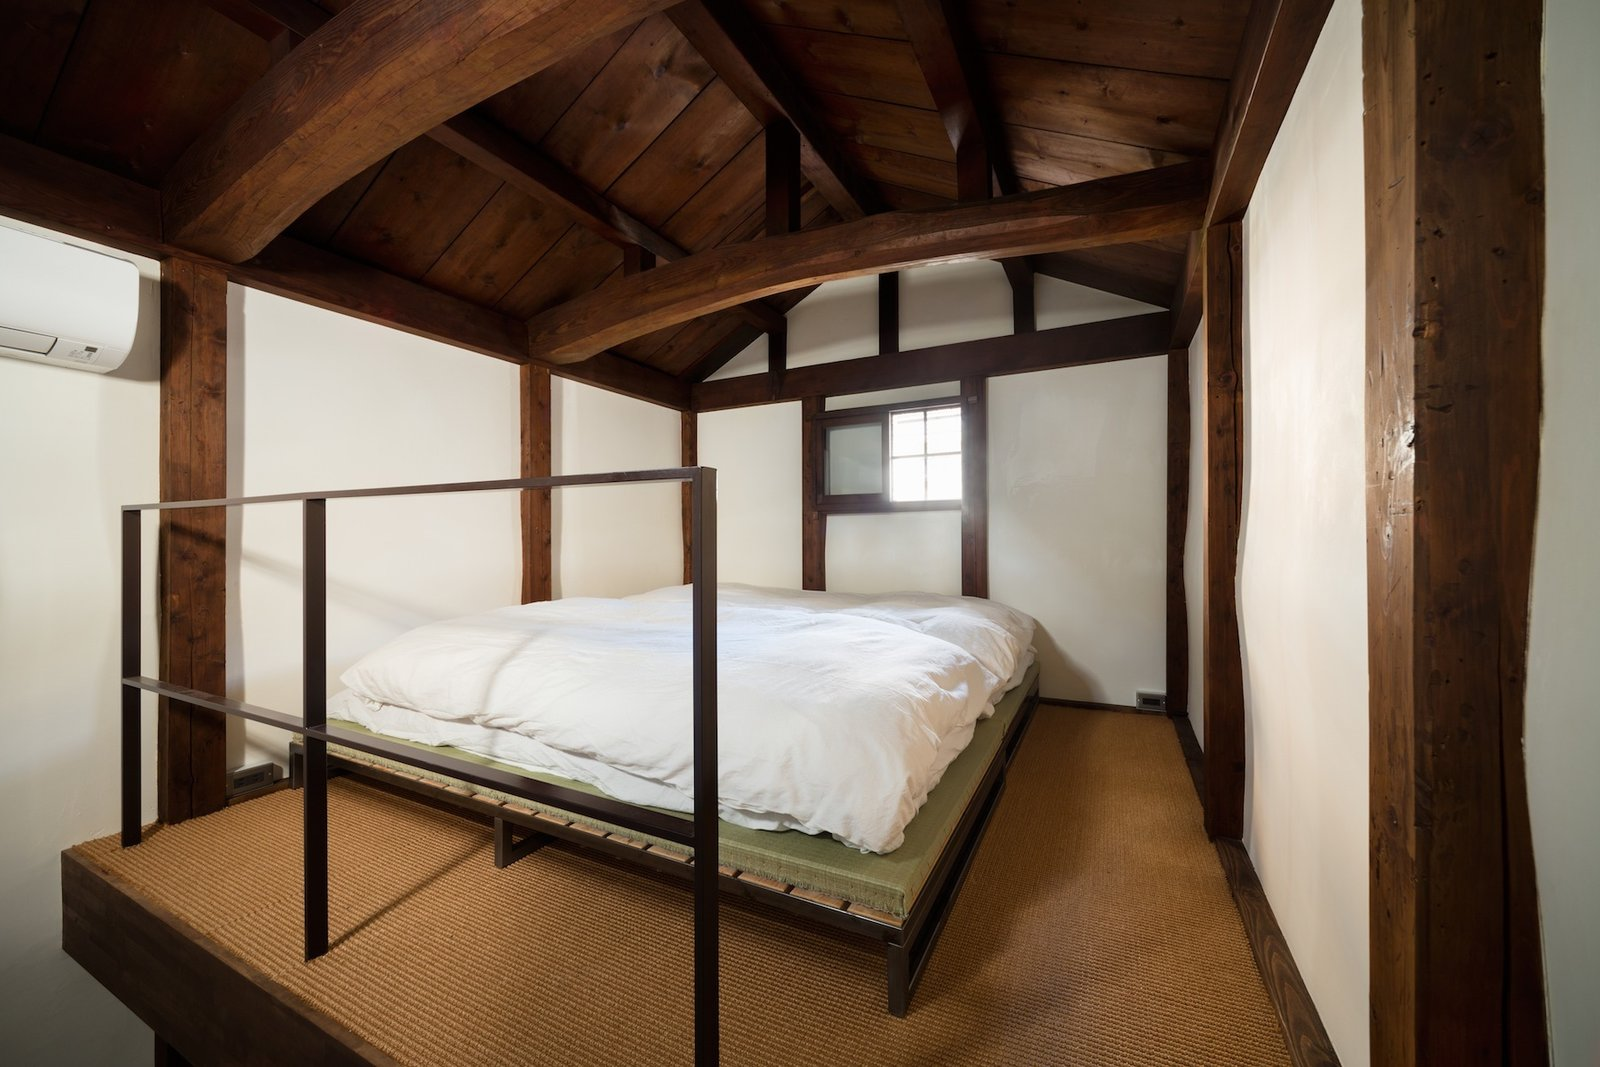 Bedroom, Bed, and Carpet Floor The second floor bedroom is surrounded by clay walls.  A tatami and futon provide sleeping quarters for two people; a mattress is available, too.  Photo 9 of 13 in A Minimalist Townhouse Provides Serene Accommodations in Historic Kyoto